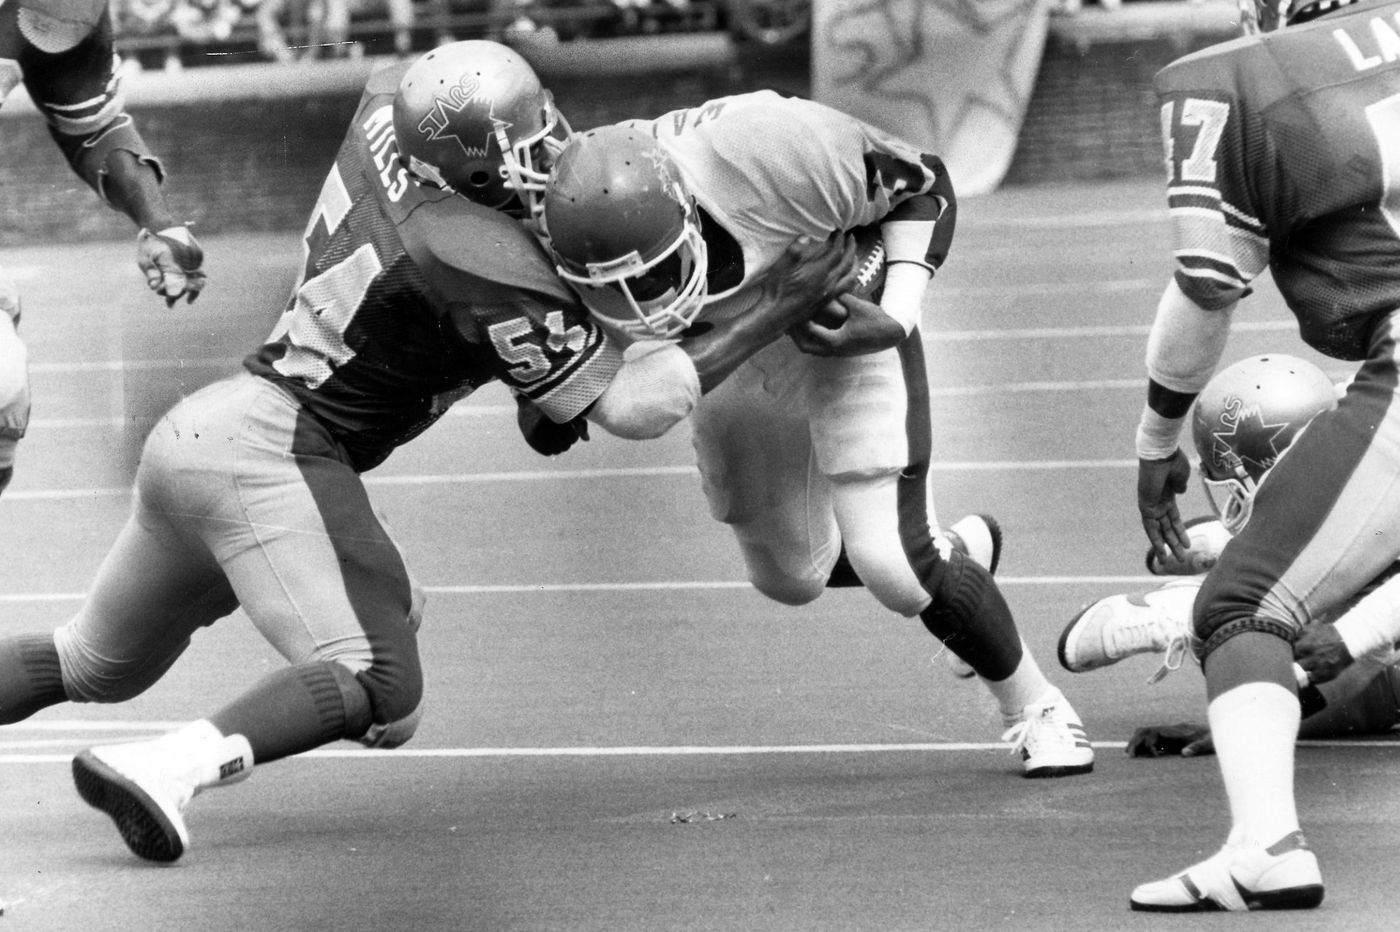 USFL star Sam Mills named semifinalist for Pro Football Hall of Fame